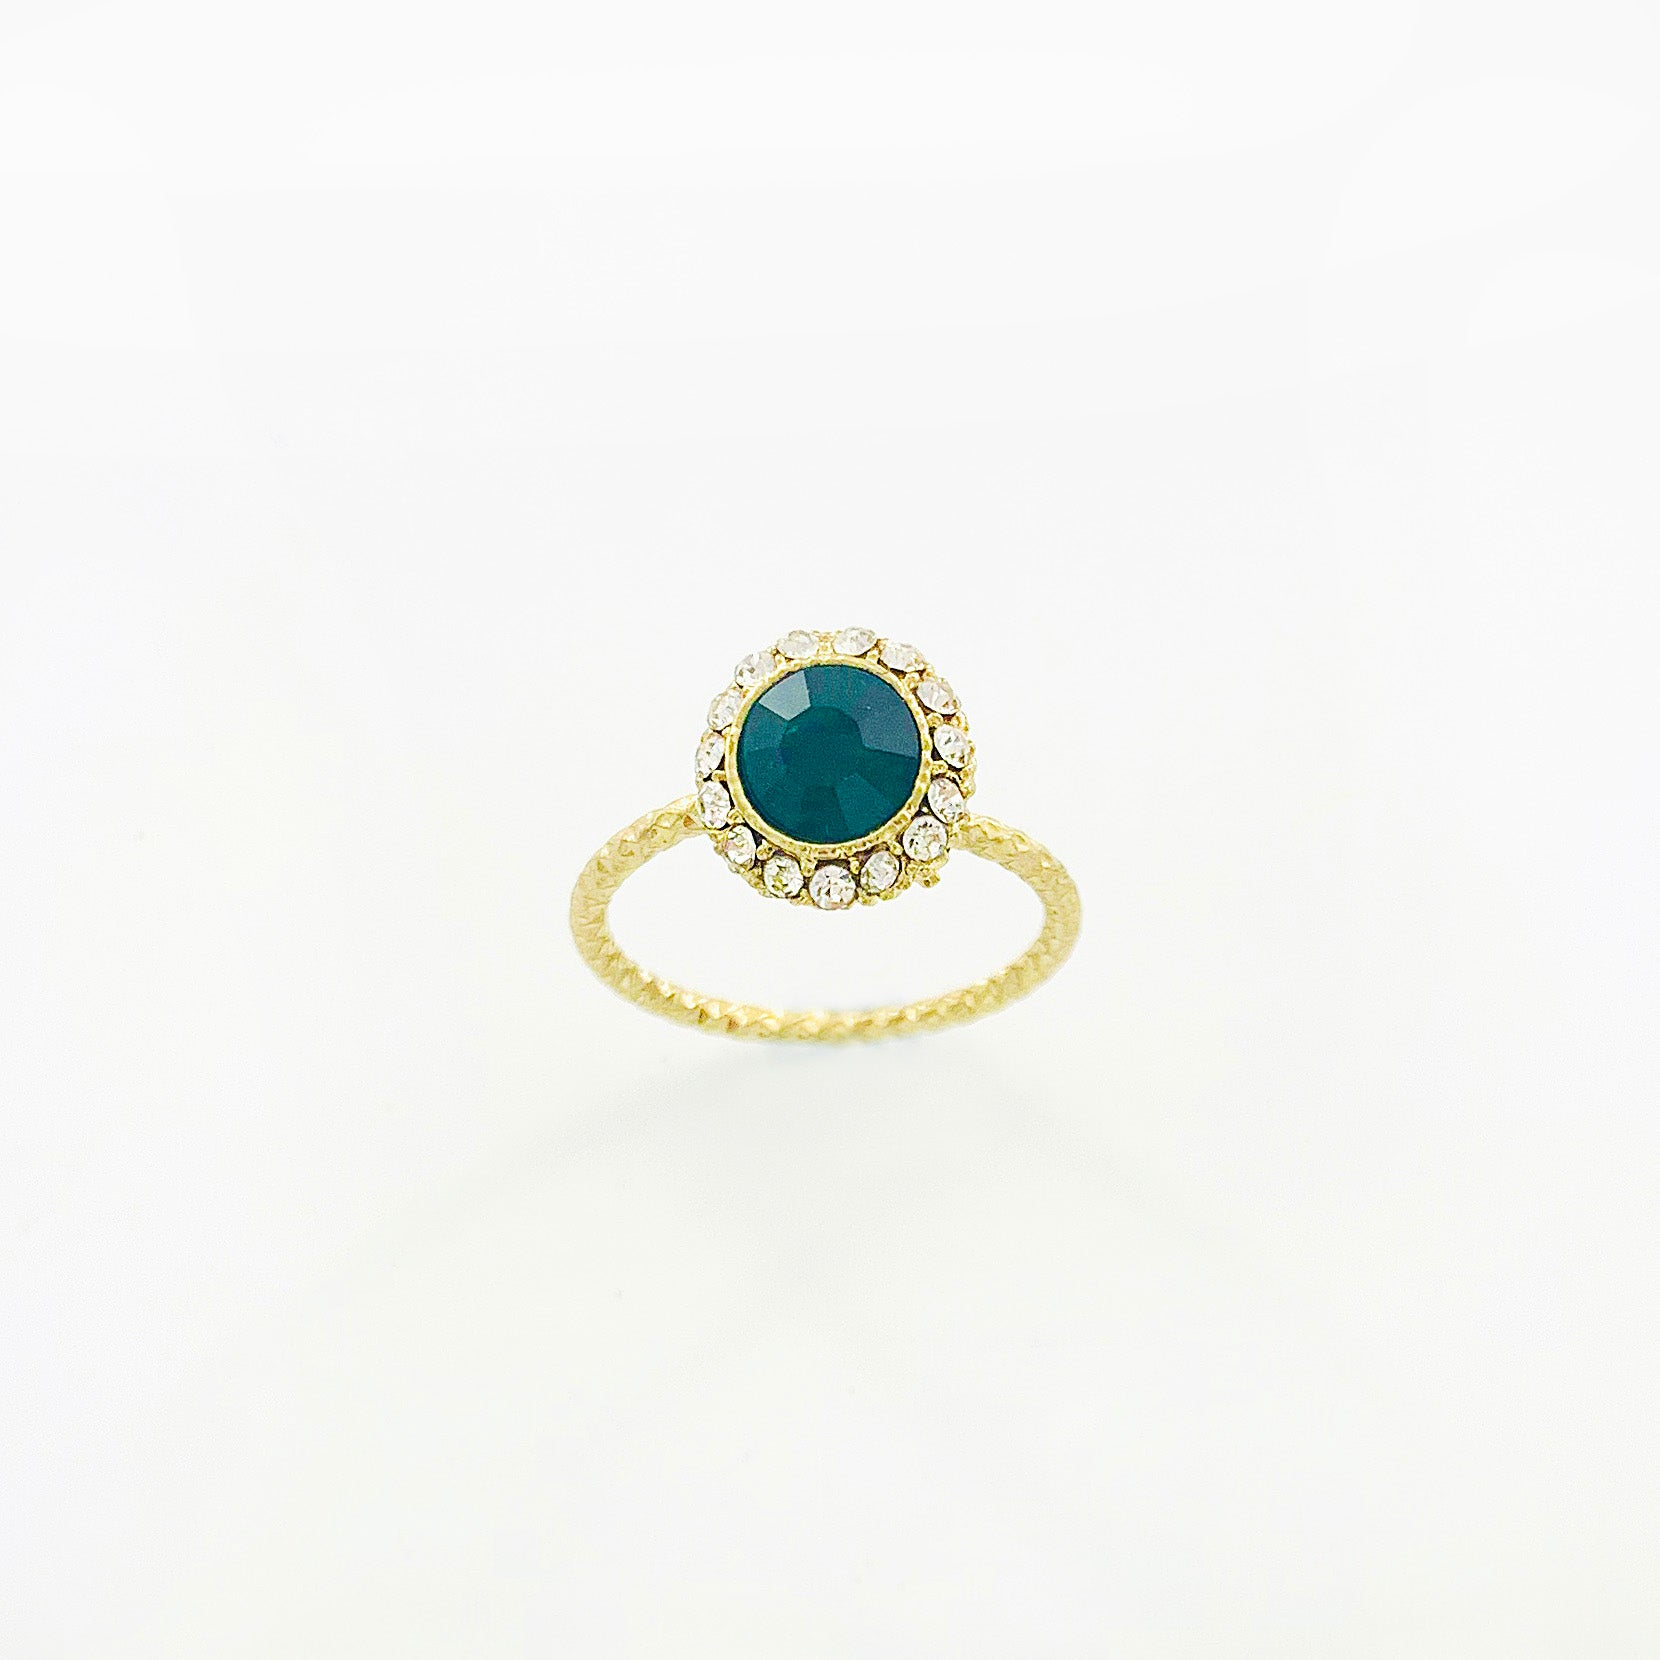 Emerald coloured crystal with diamante stones on textured gold ring